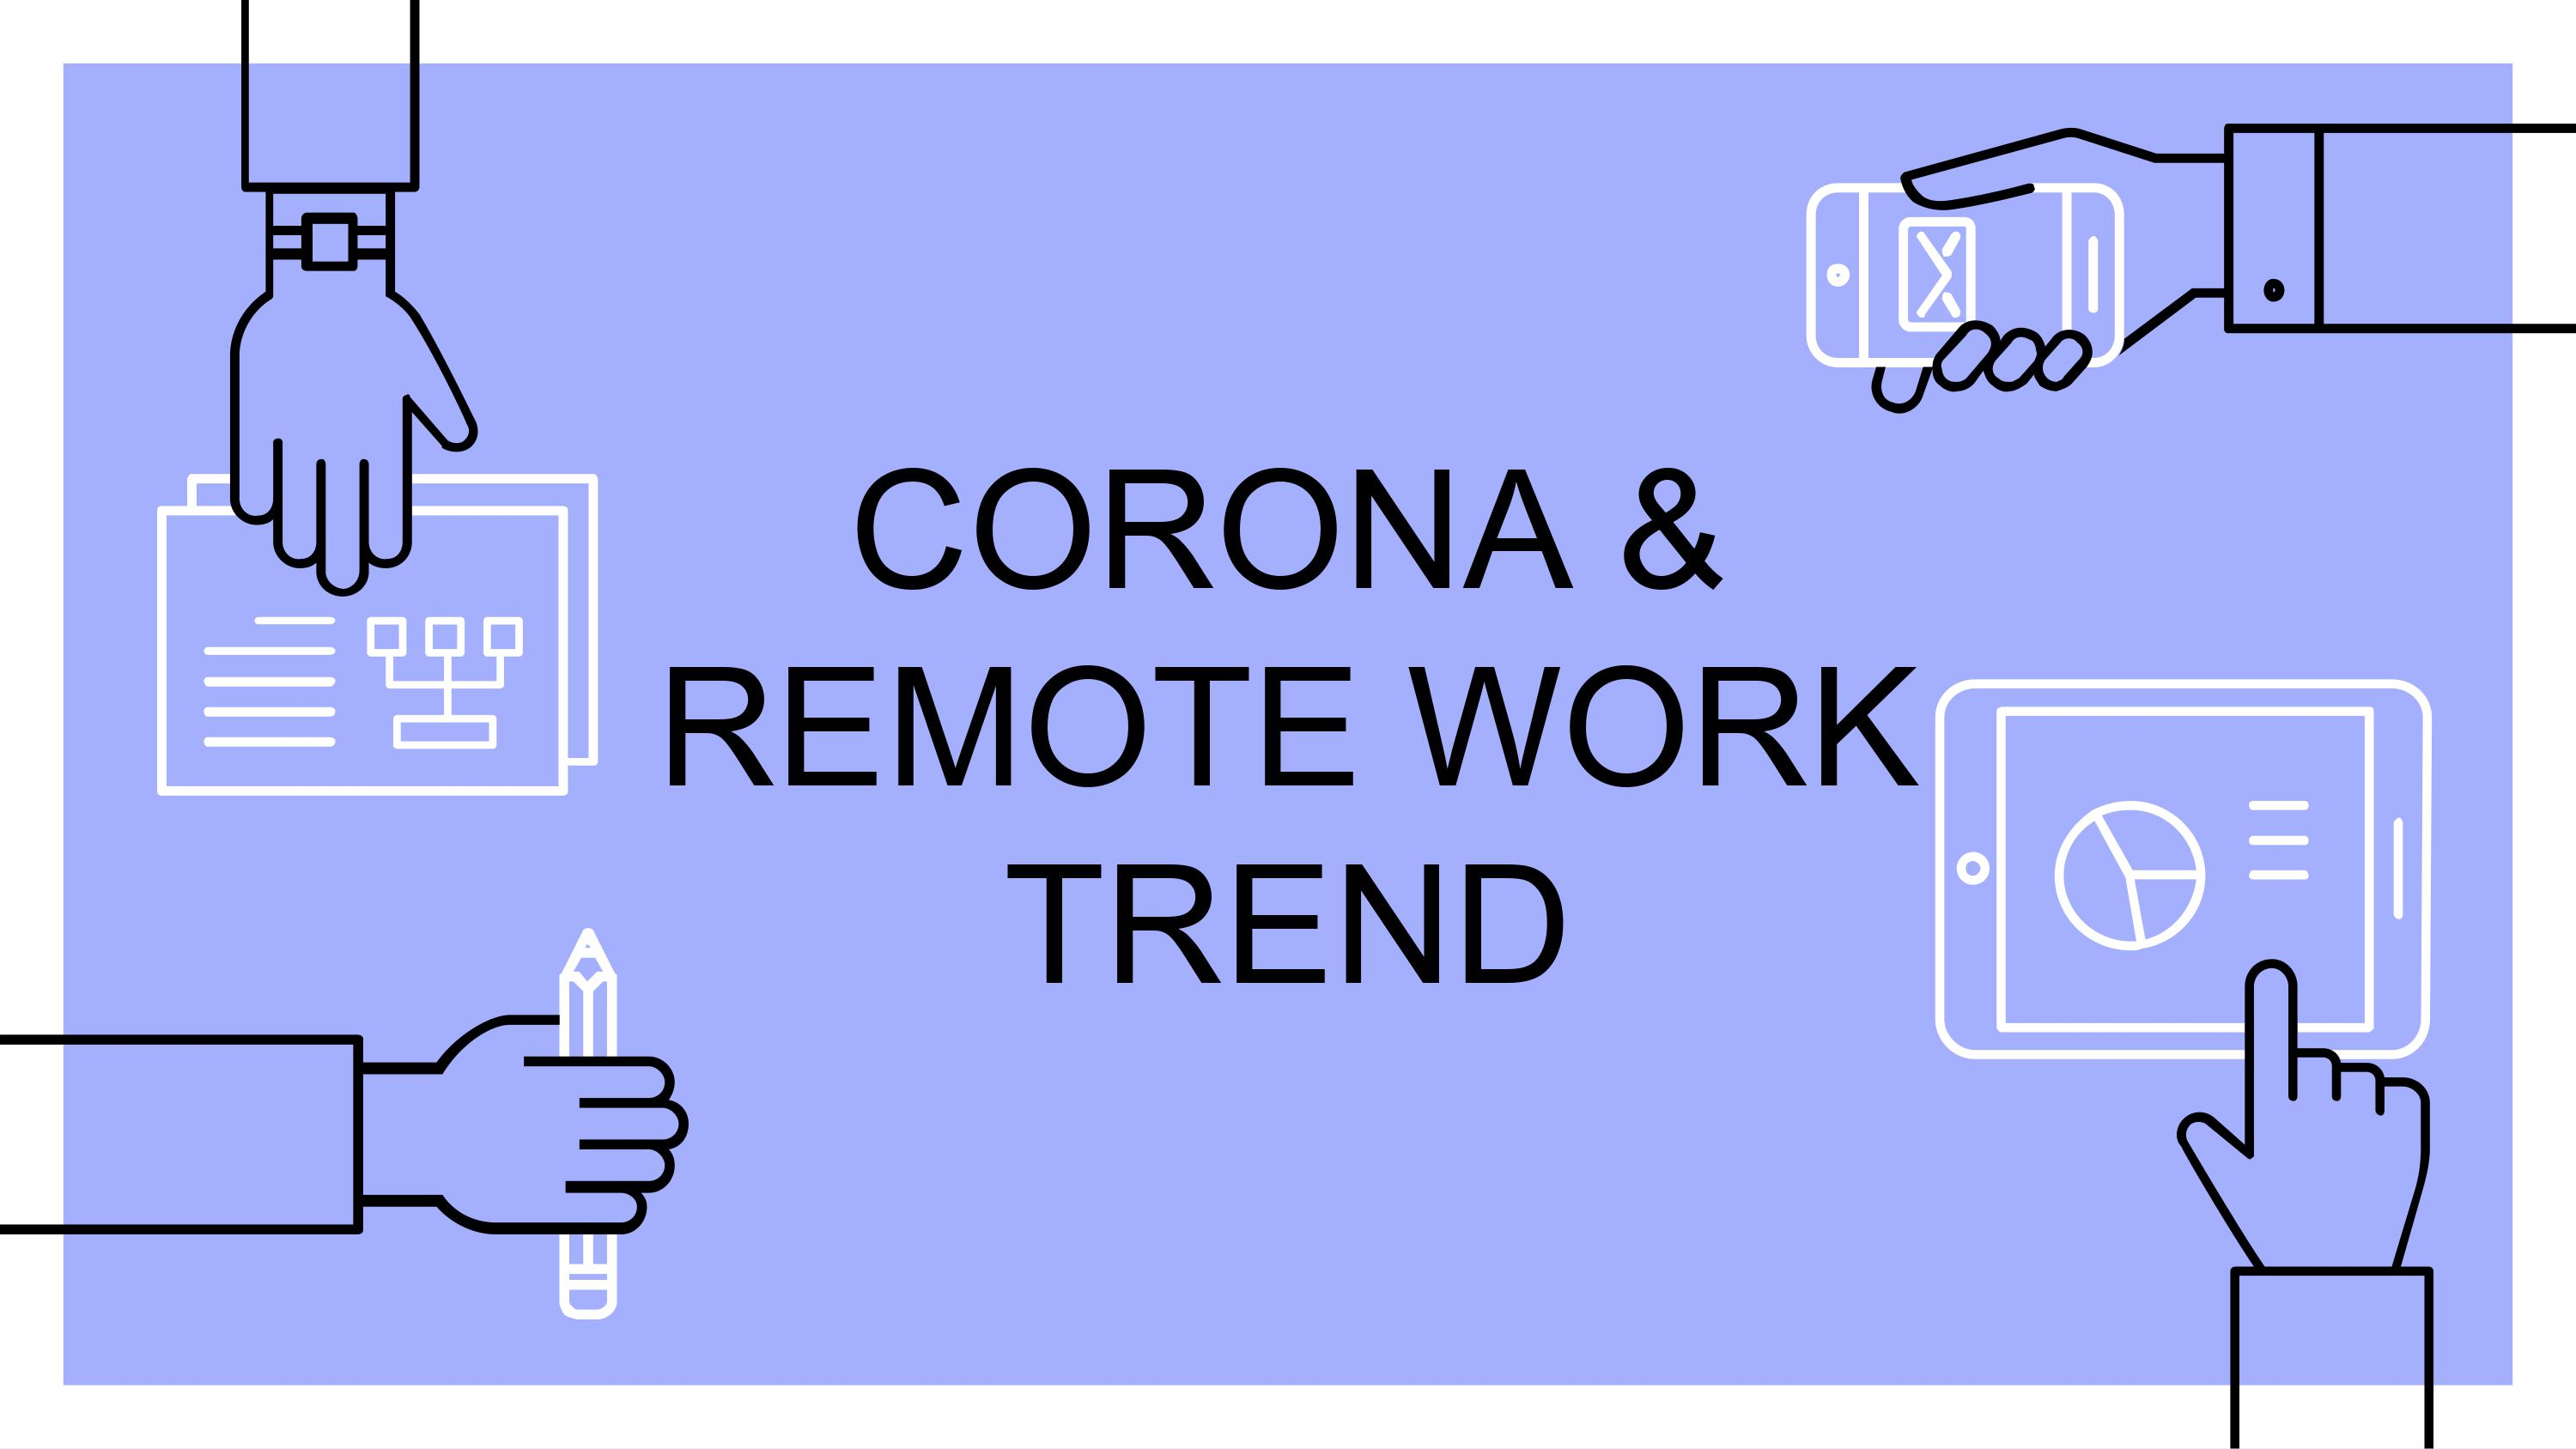 Coronavirus and Work from home productively